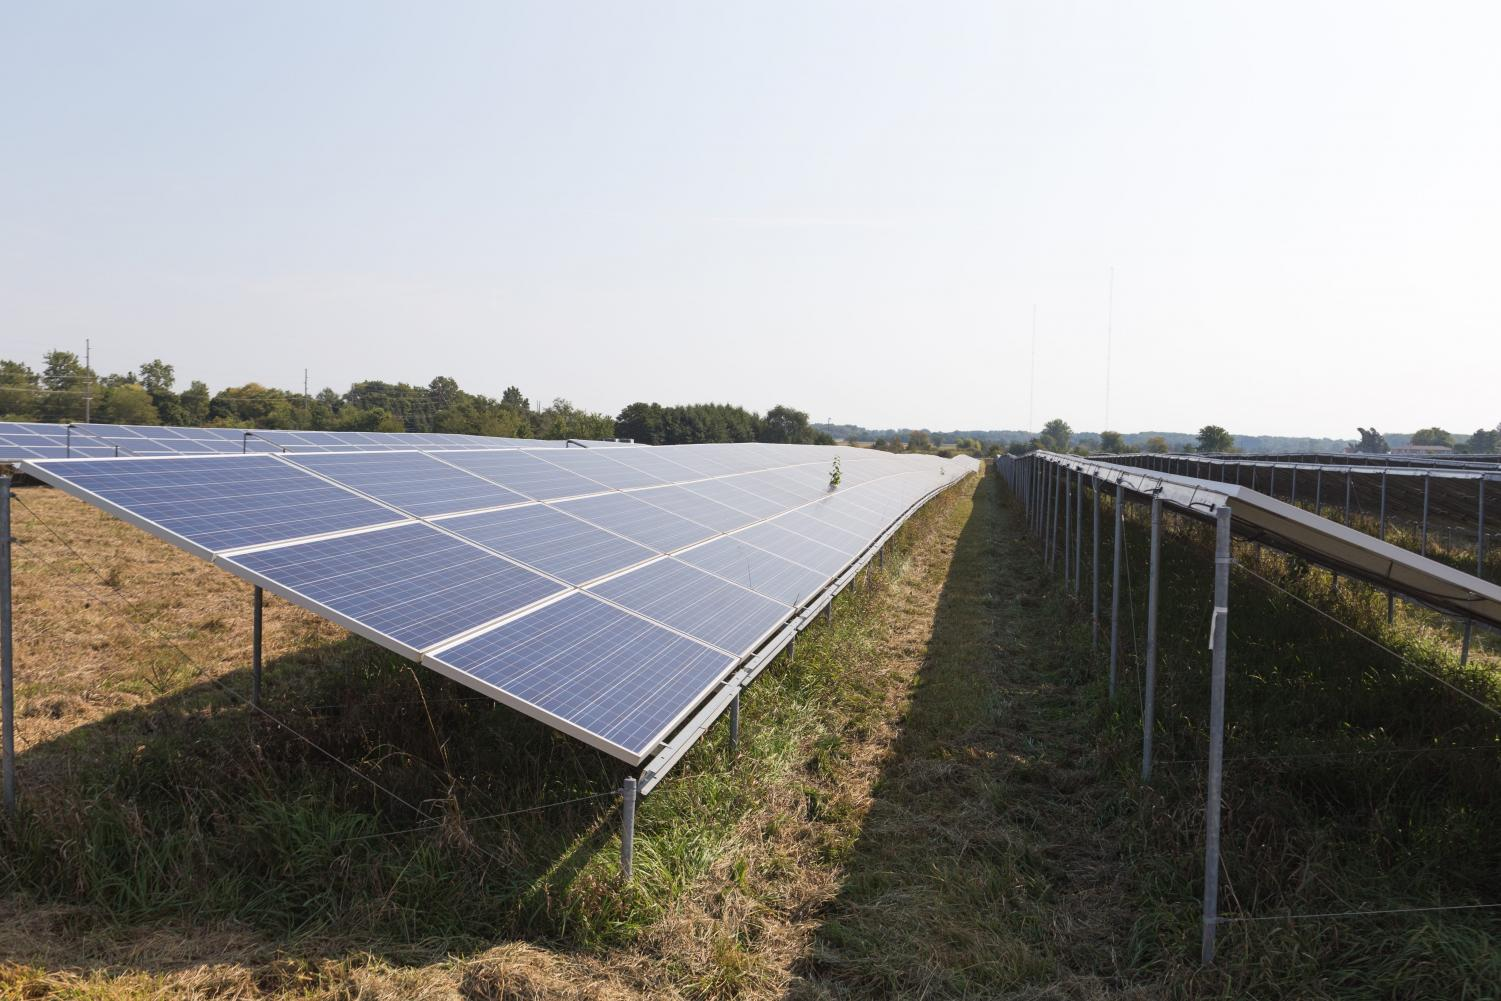 The Solar Power Panel Farm near First Street and Windsor Road has been in operation since December 2015. The University has recently agreed to a contract on creating a new solar farm.